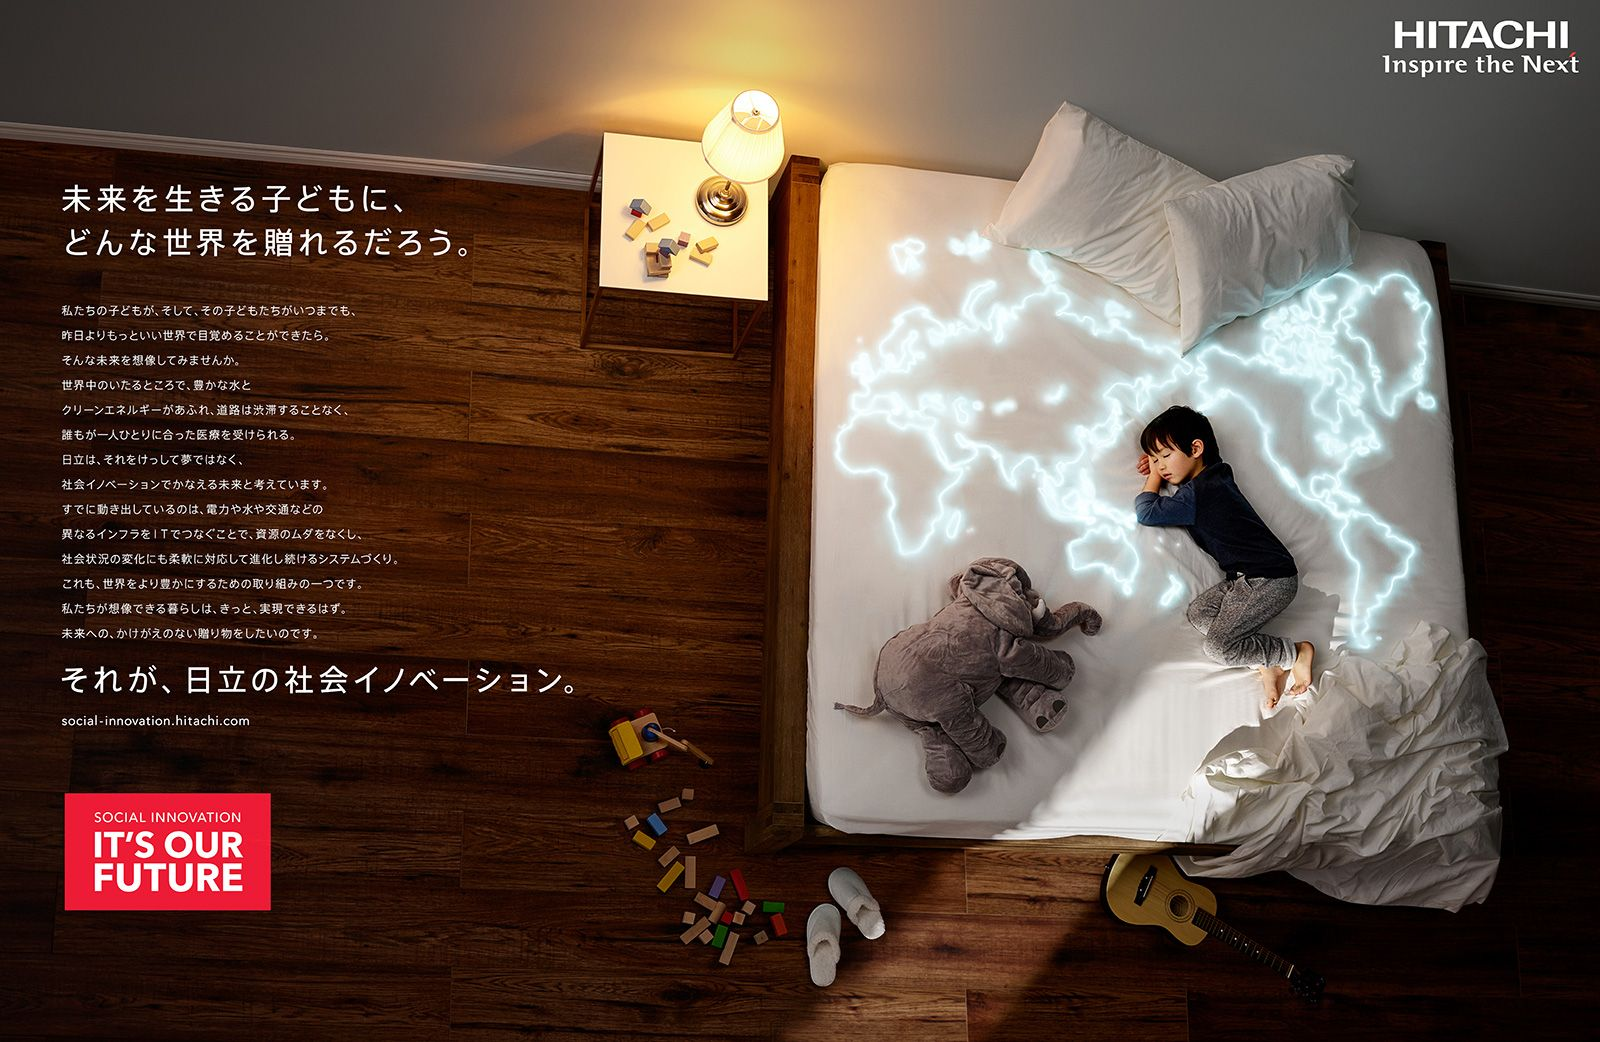 little asian boy sleeping in a bed with stuffed elephant surrounded by glowing outline of the world by Guillaume Simoneau for Hitachi